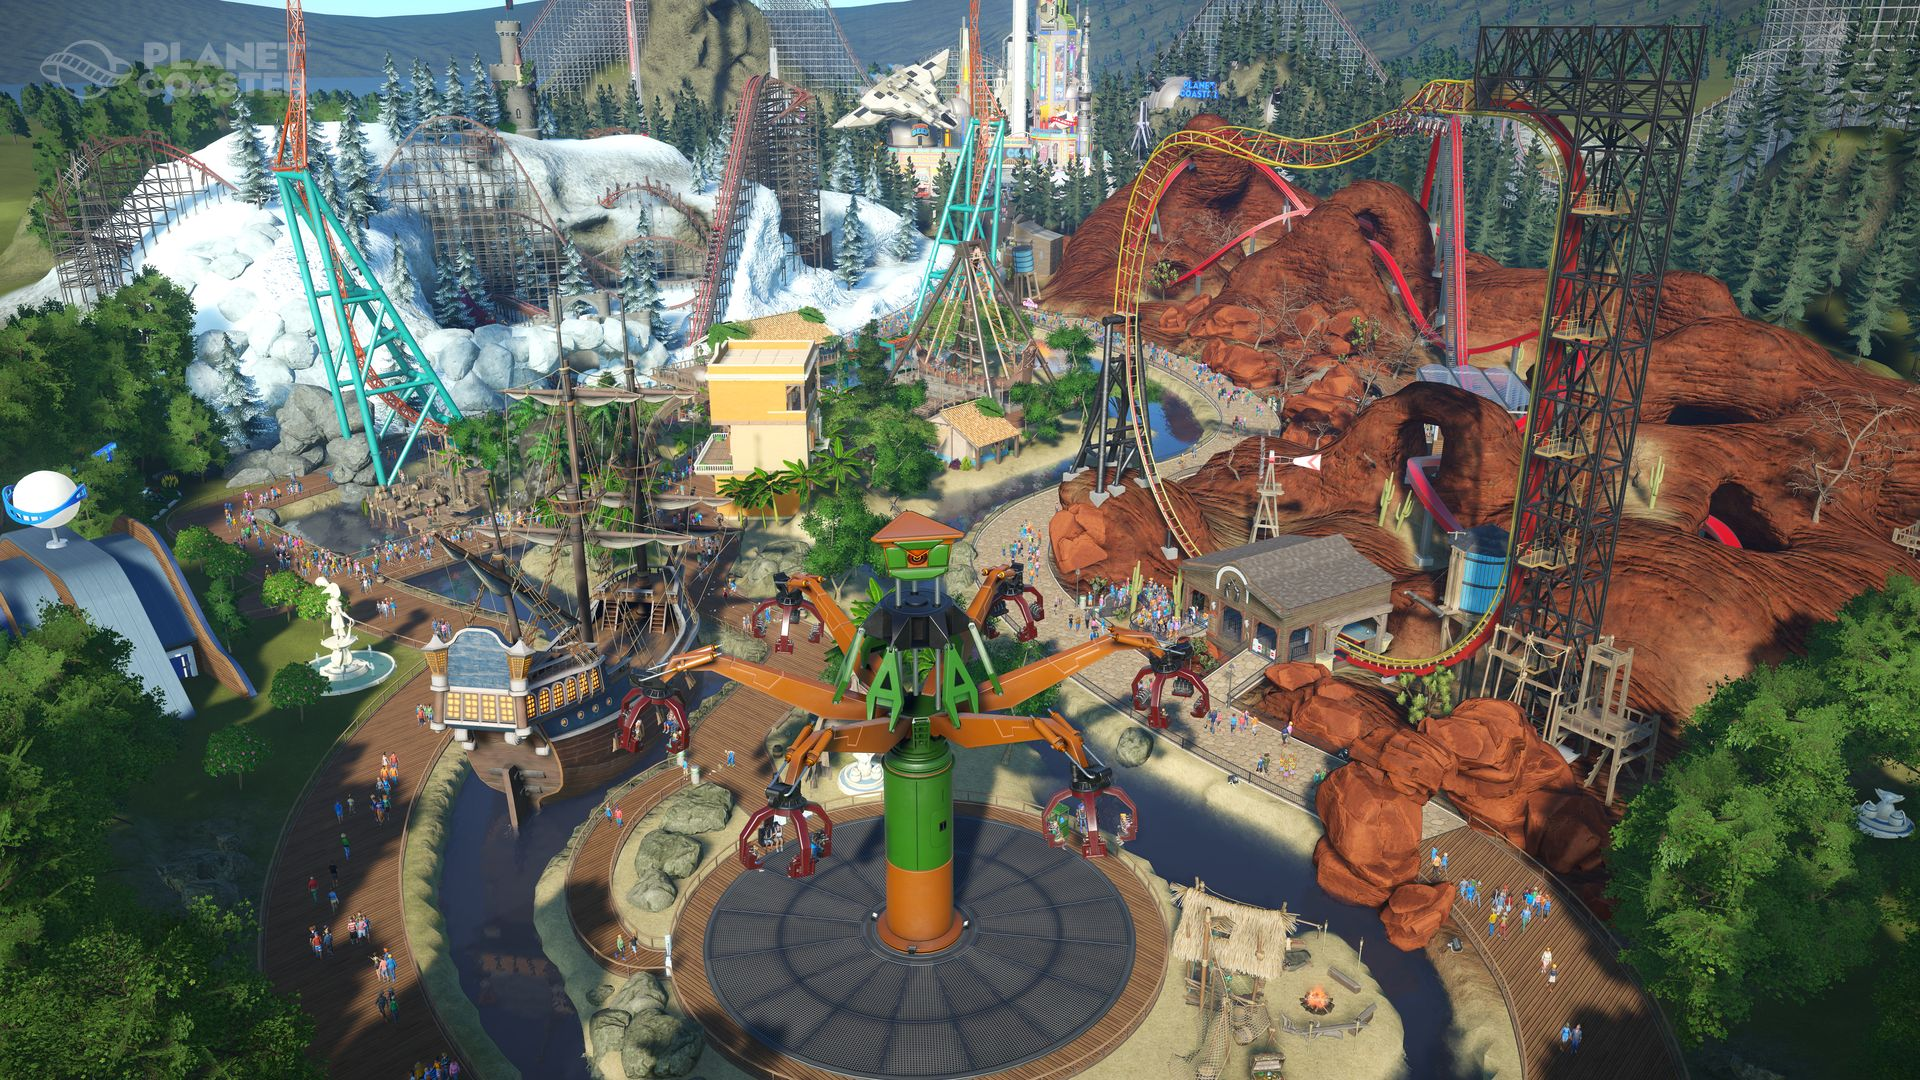 PLANET COASTER CEDAR POINTS STEEL VENGEANCE-STEAM PUNKS Torrent Free Download